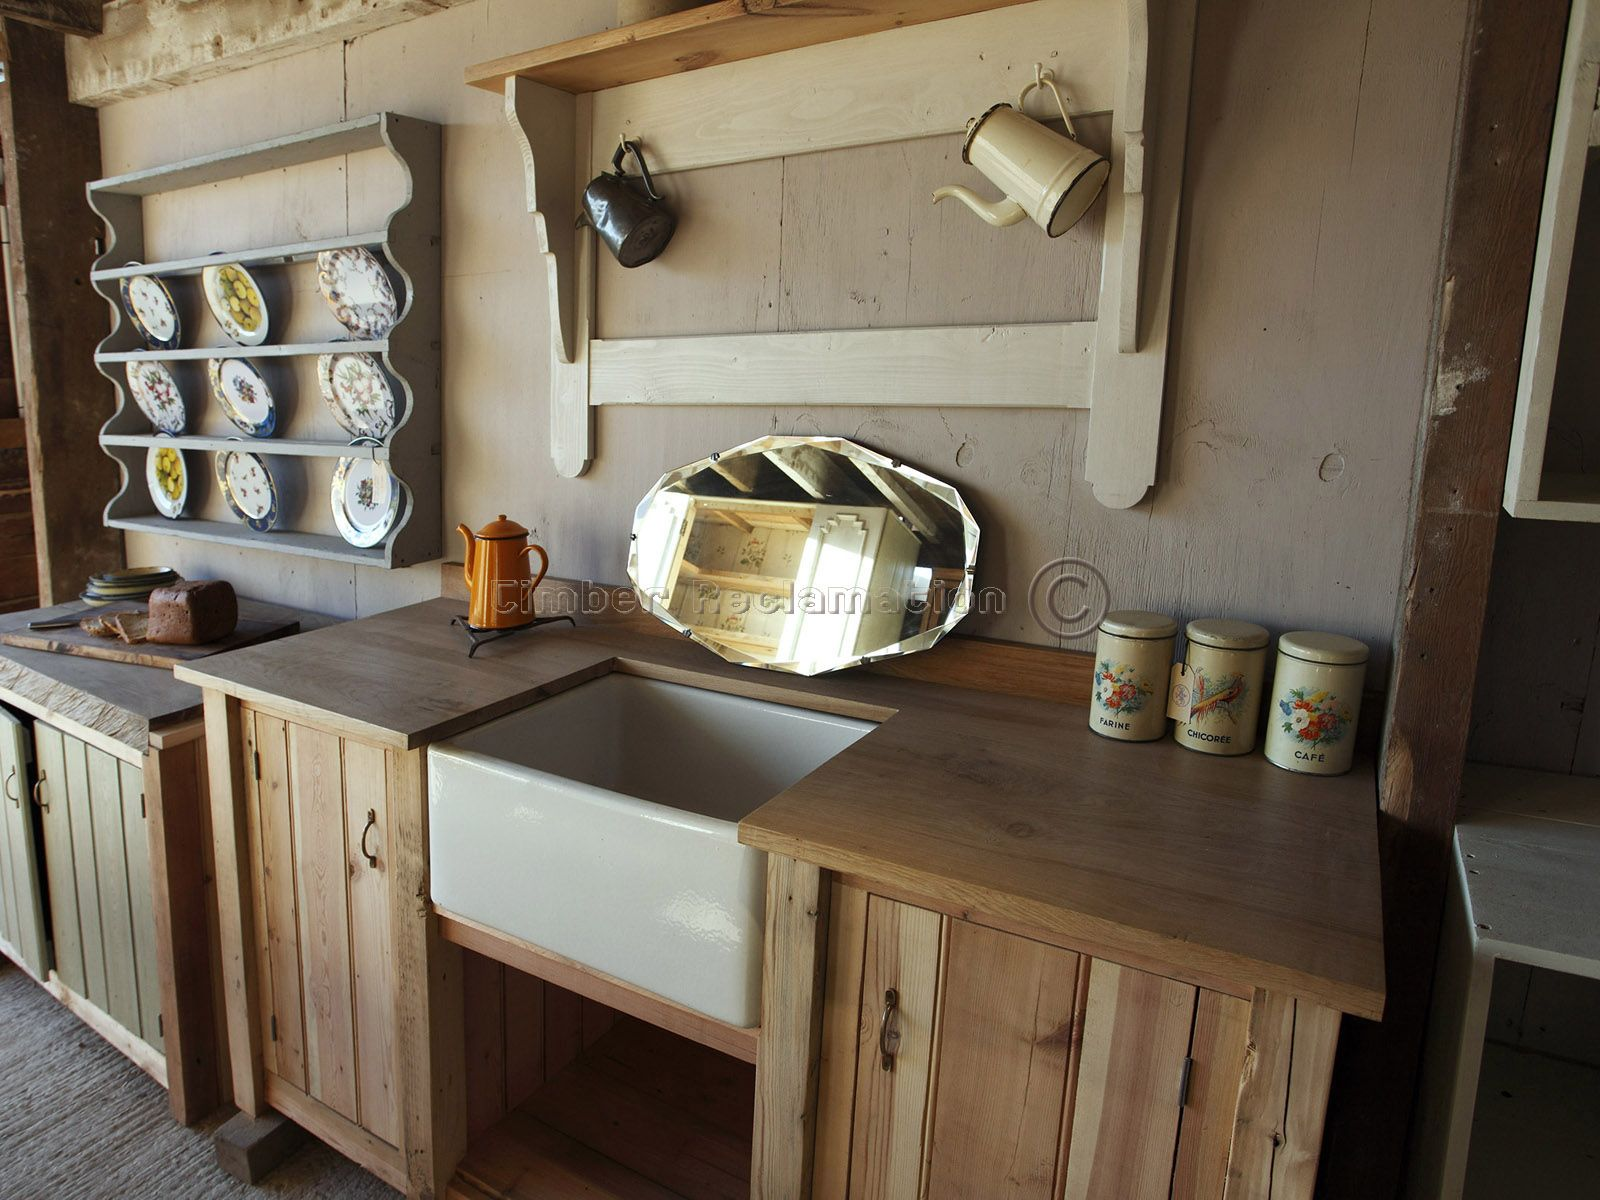 reclaimed kitchen - Google Search | House | Pinterest | Sink units ...